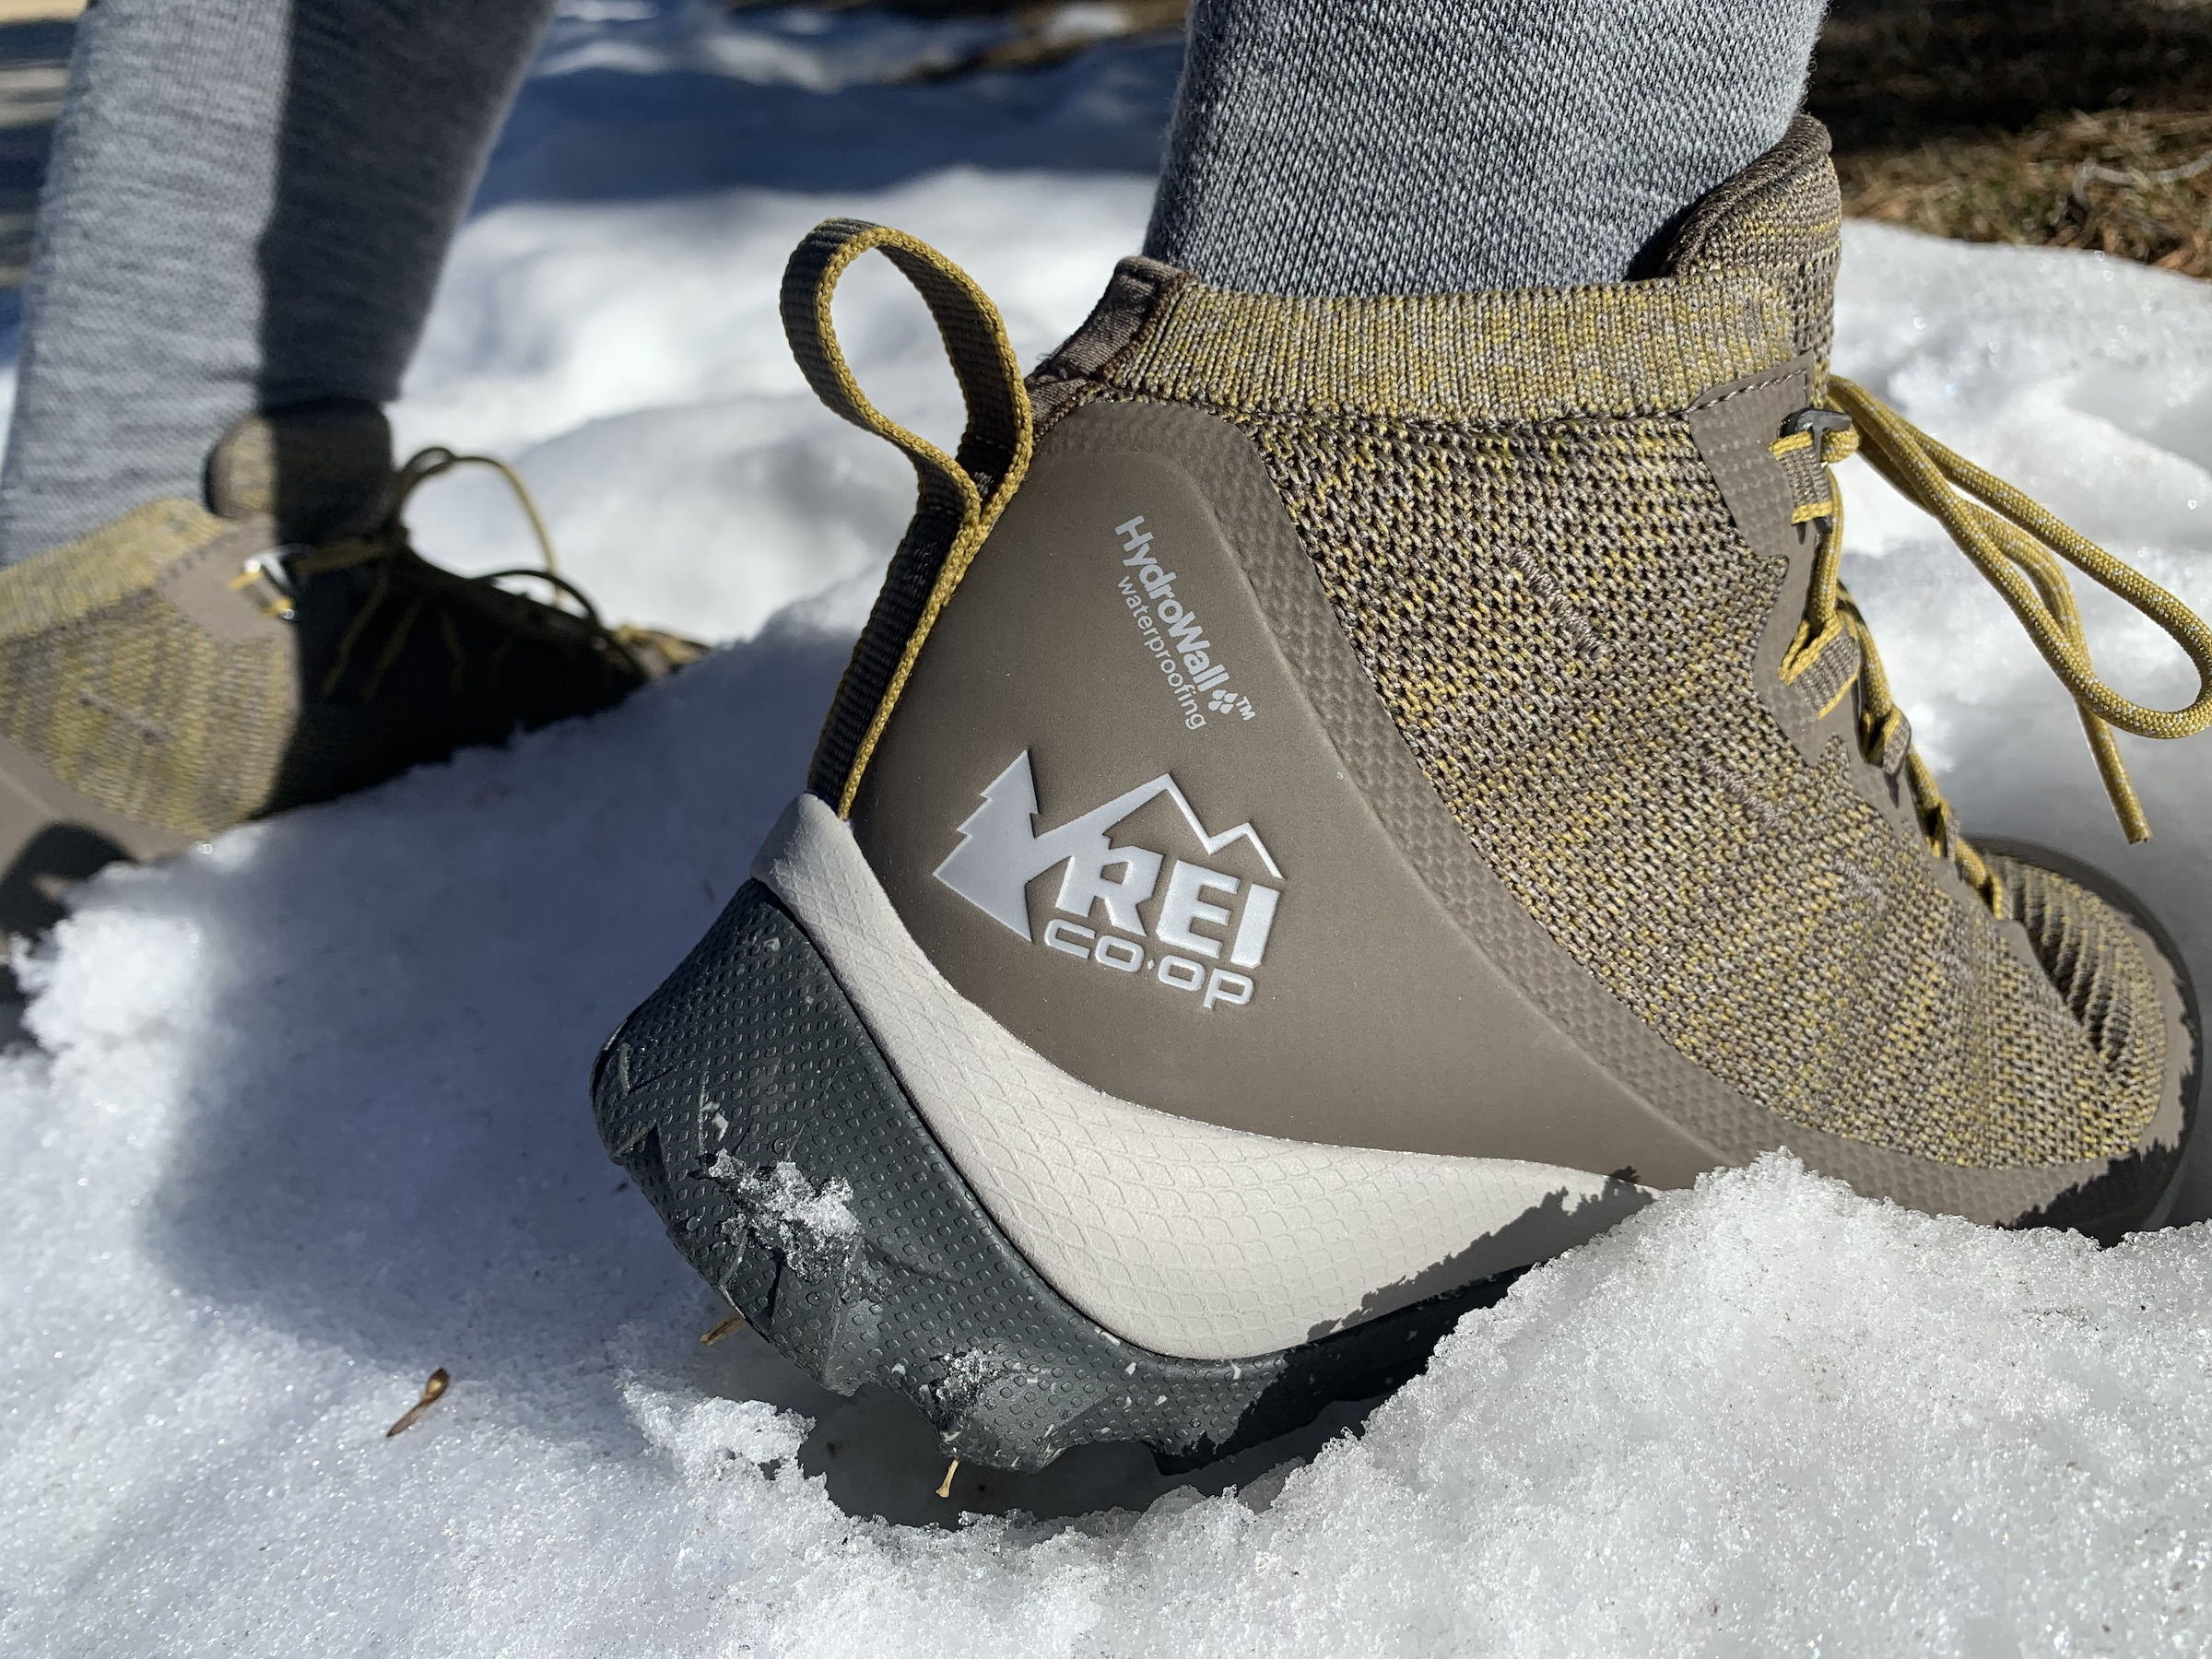 close-up of HydroWall logo on back heel of REI Flash boot